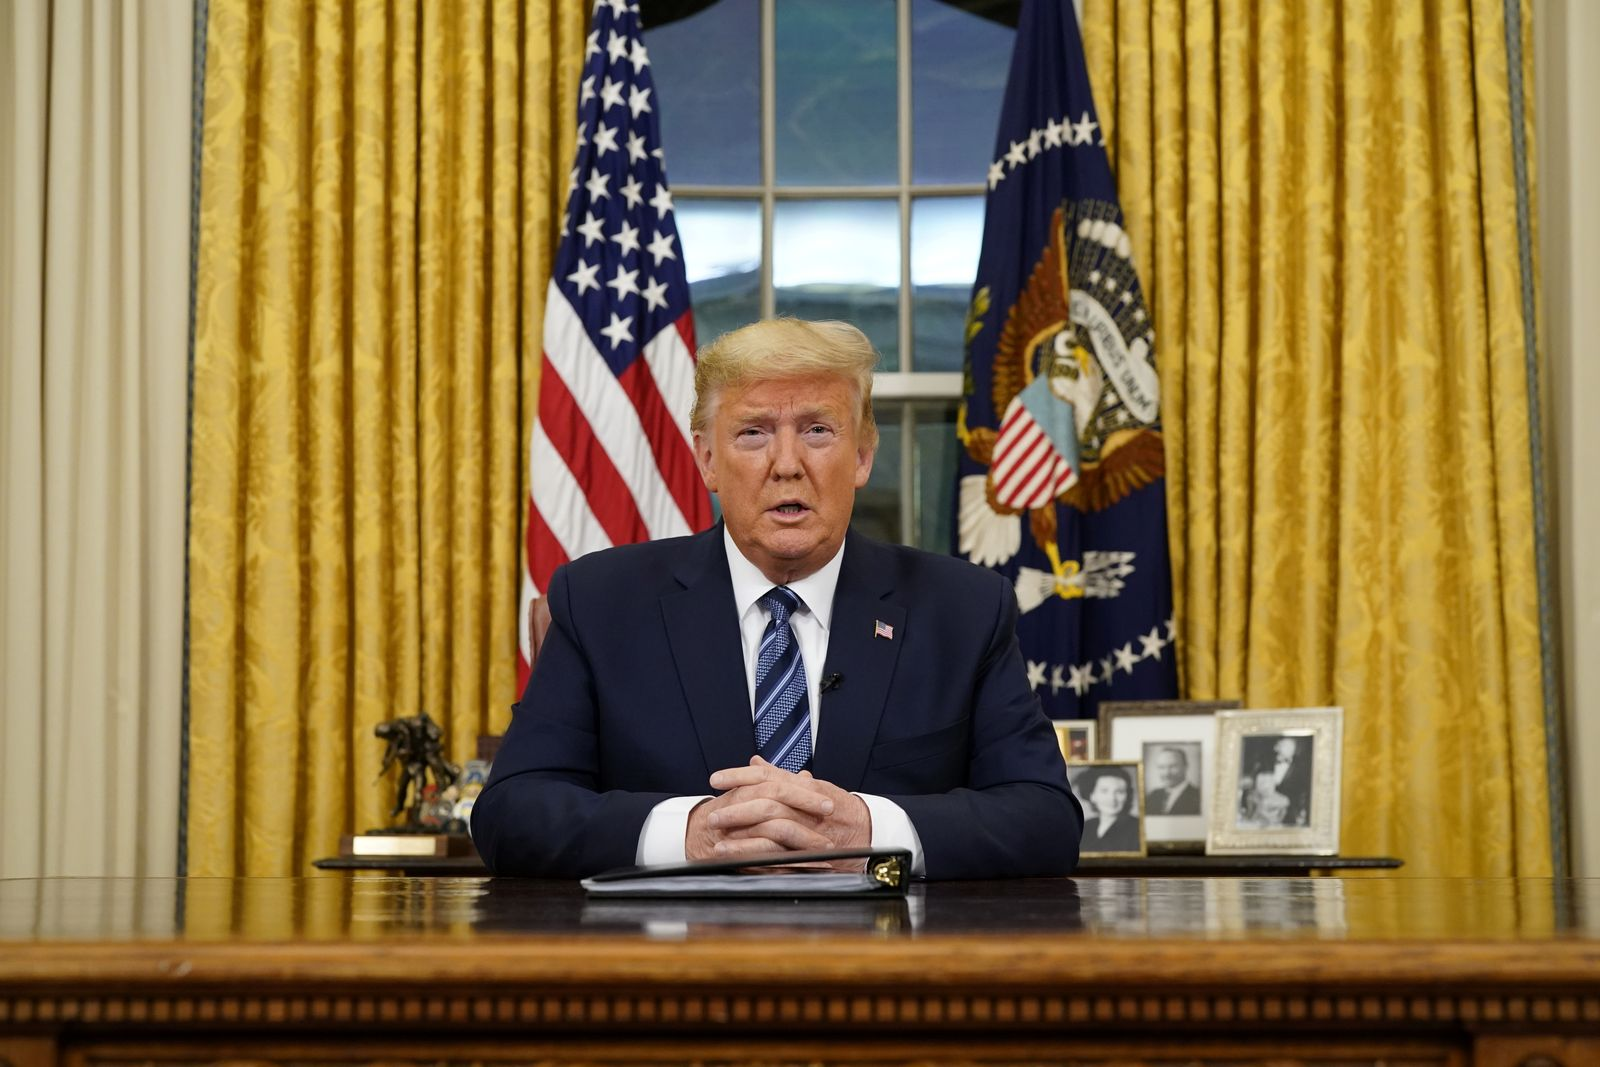 U.S. President Trump speaks about the U.S response to the COVID-19 coronavirus pandemic during an address to the nation from the Oval Office of the White House